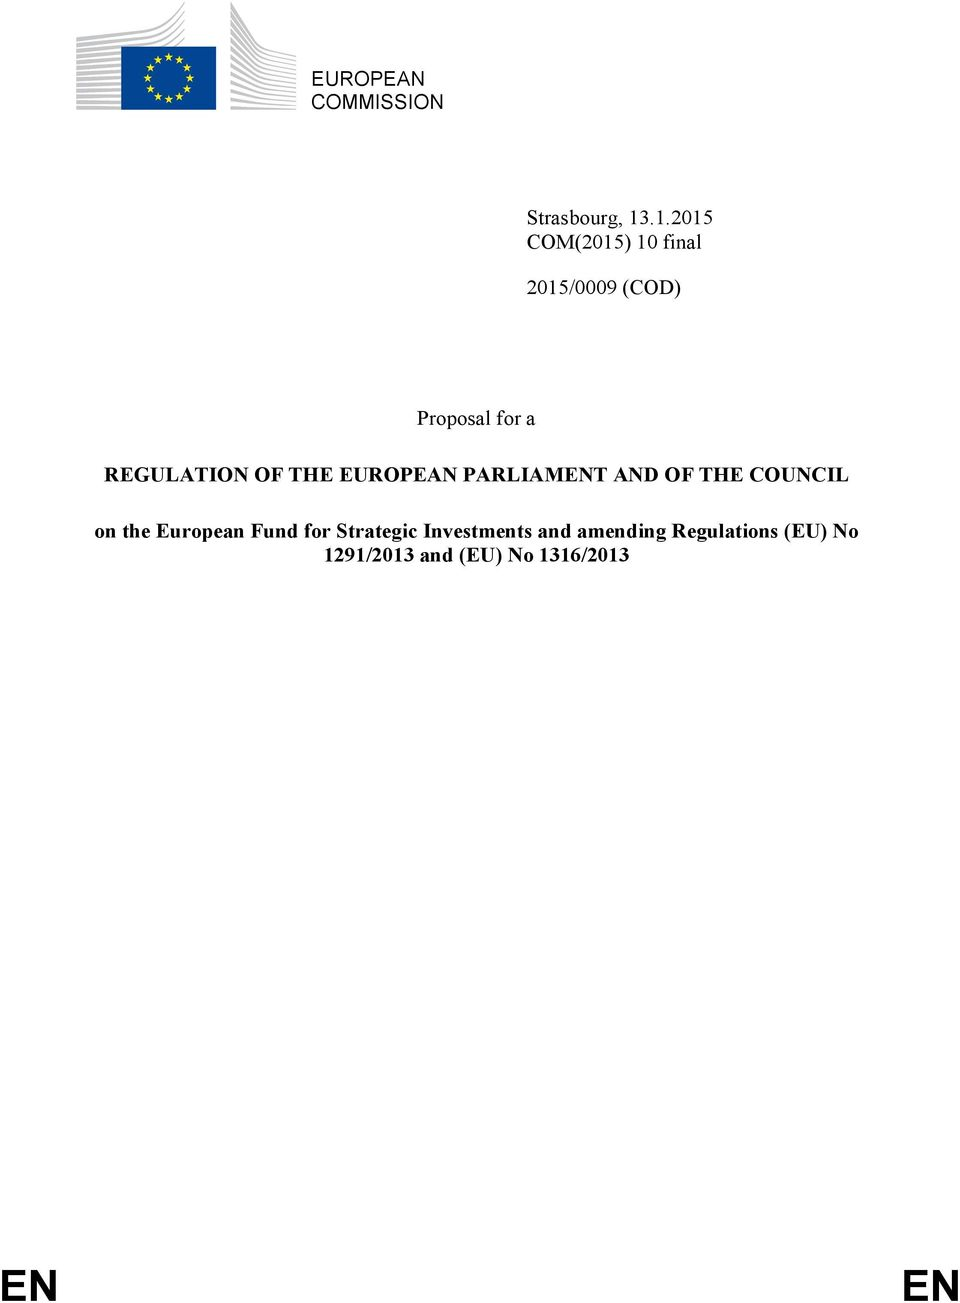 REGULATION OF THE EUROPEAN PARLIAMENT AND OF THE COUNCIL on the